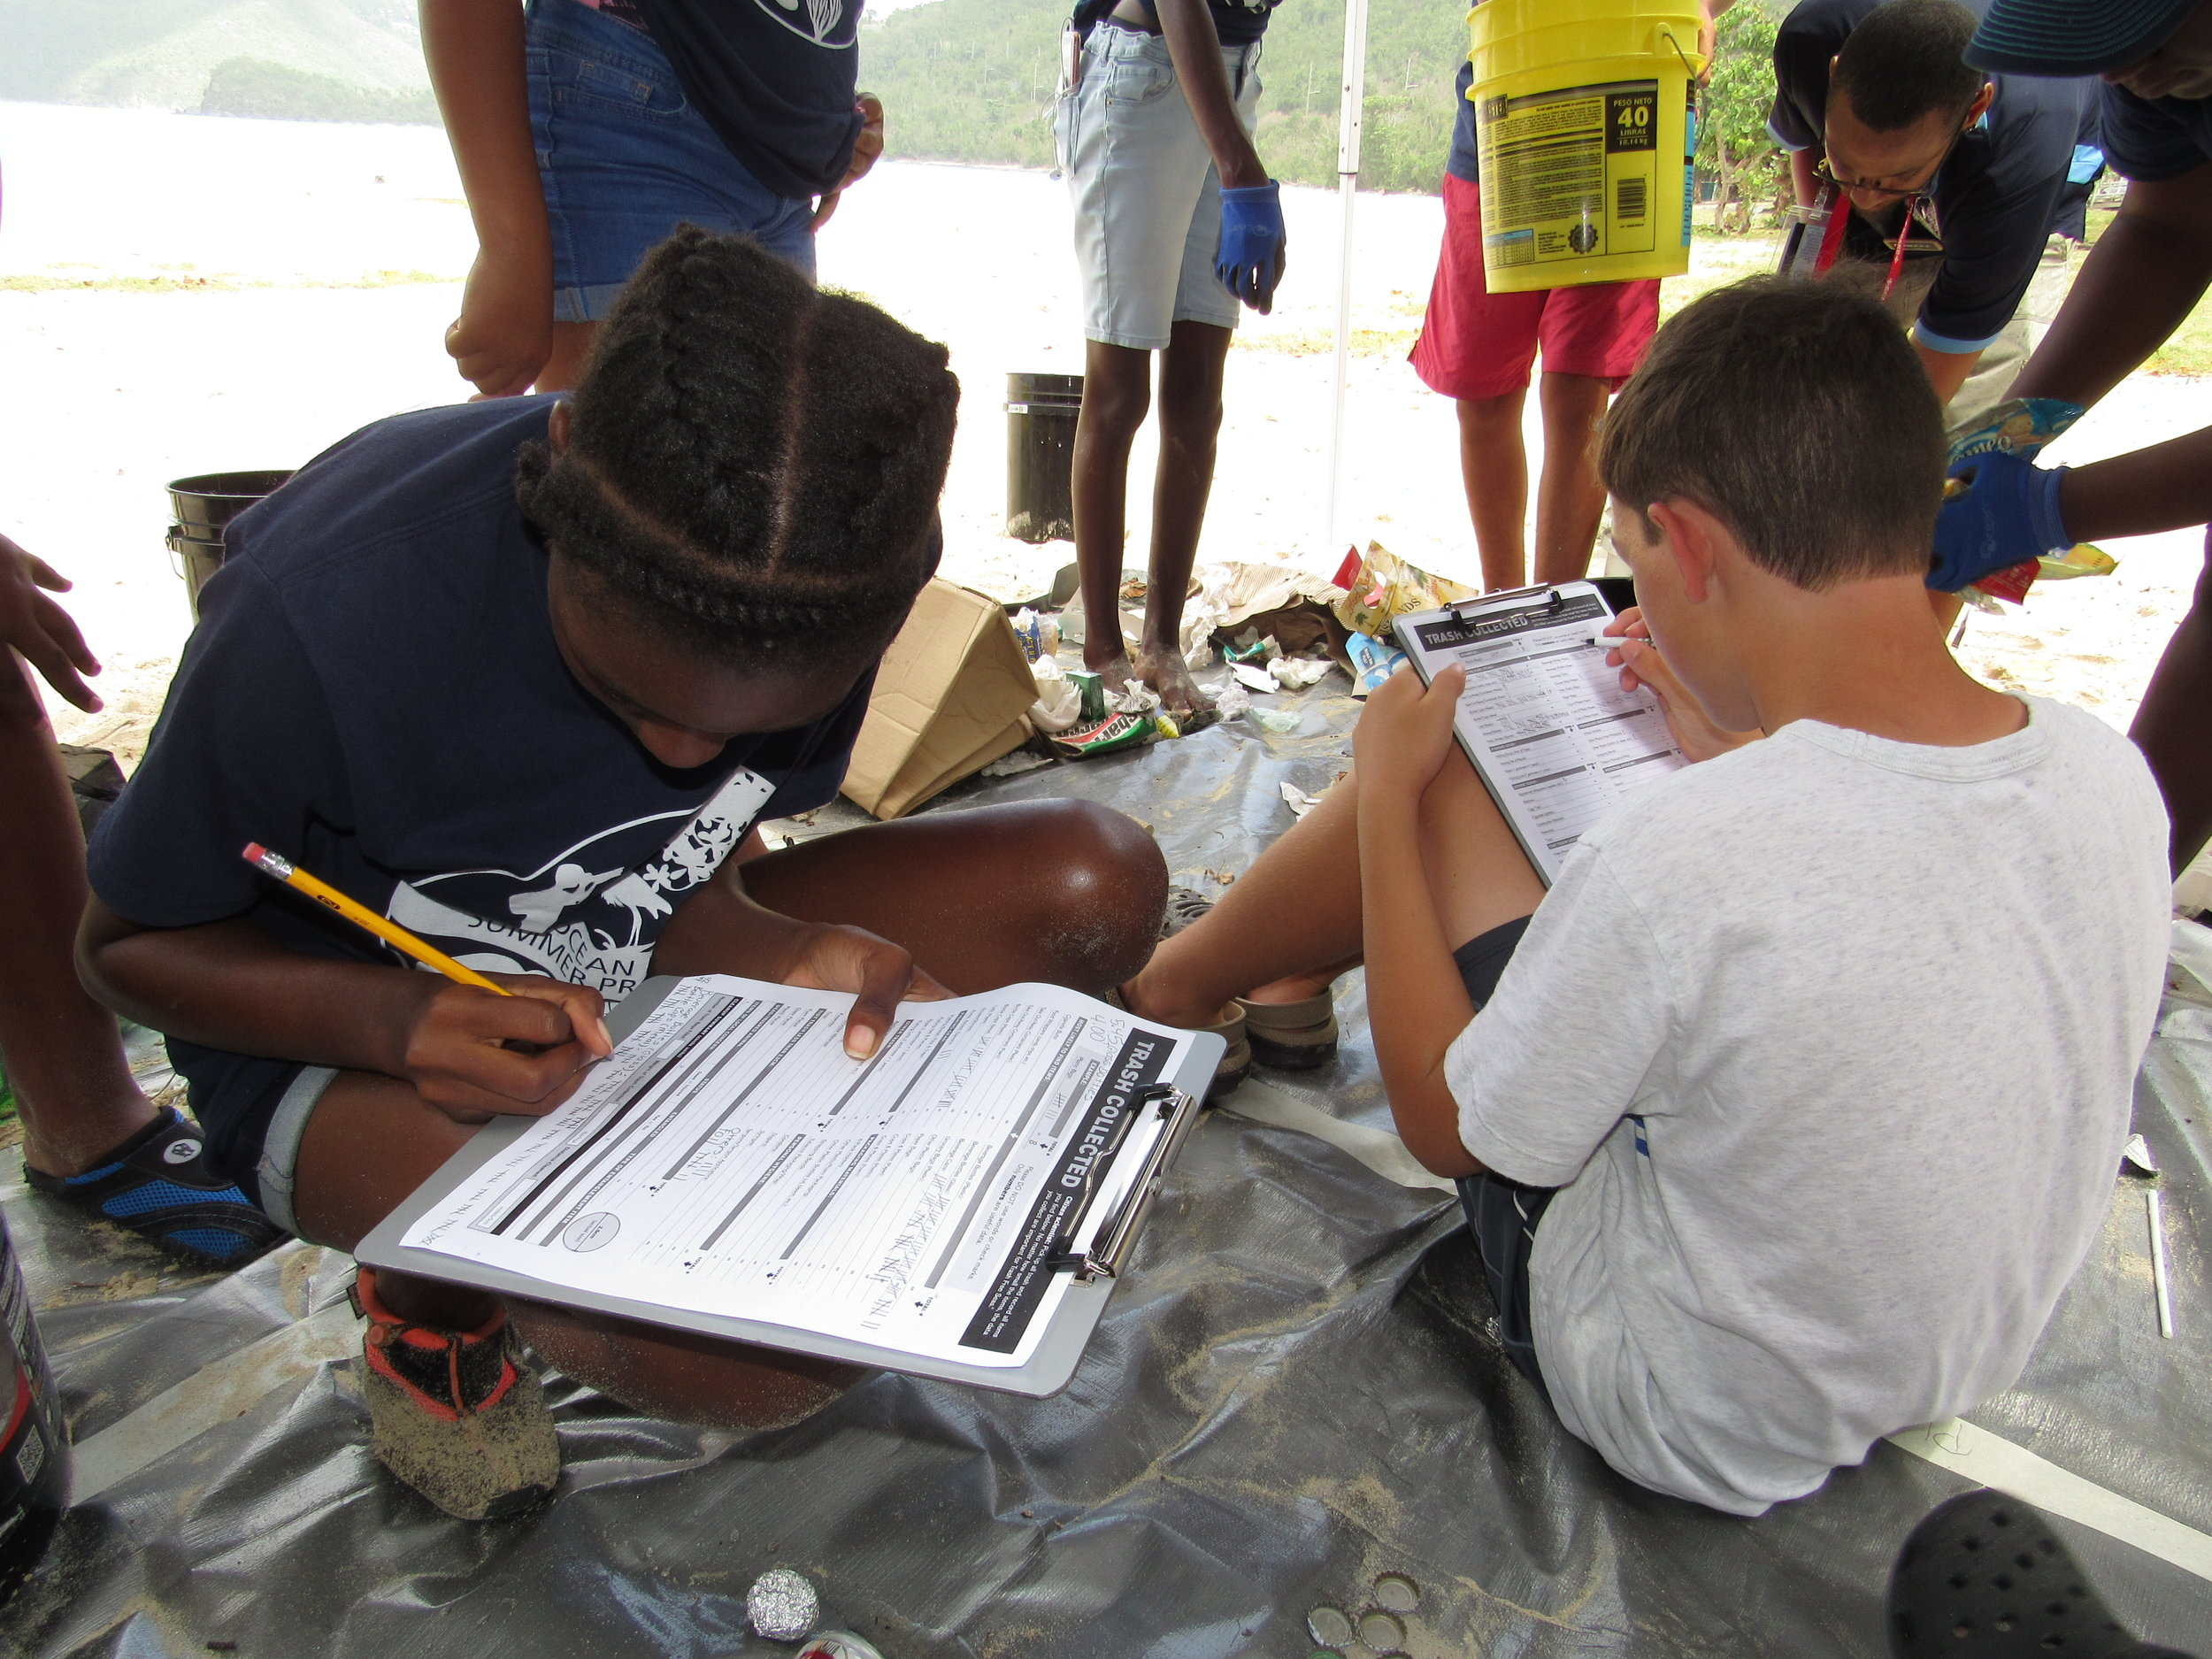 YOE students tallying marine debris collected on Brewers Bay beach.